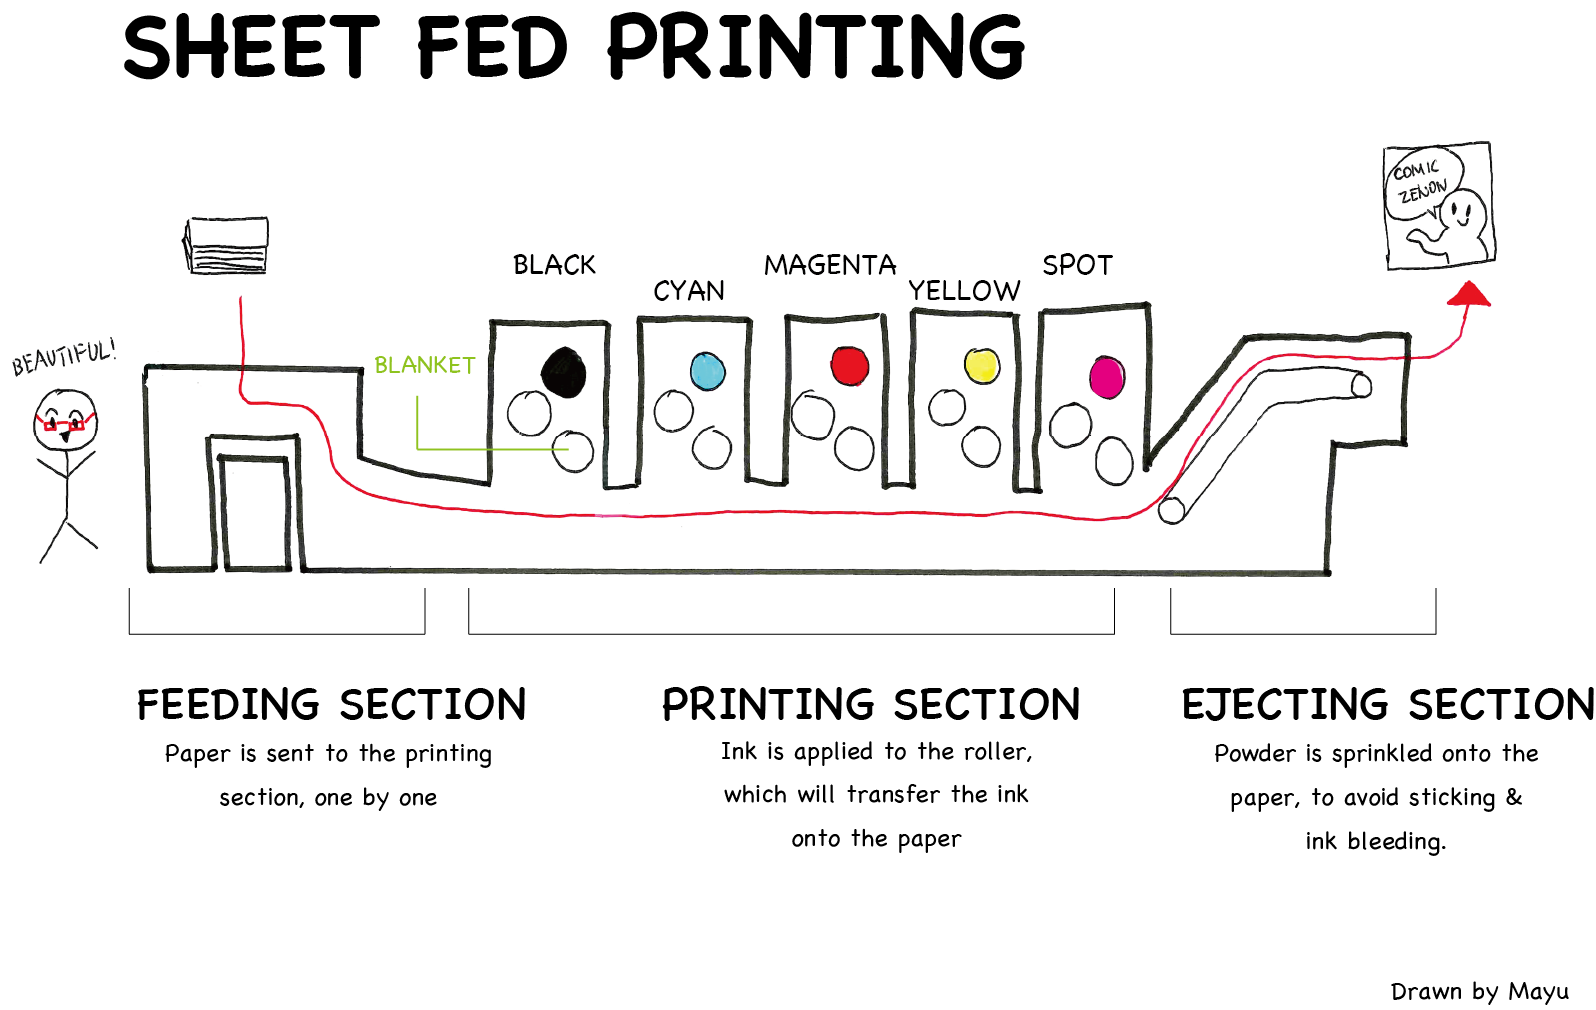 Here's a diagram of sheet fed printing!